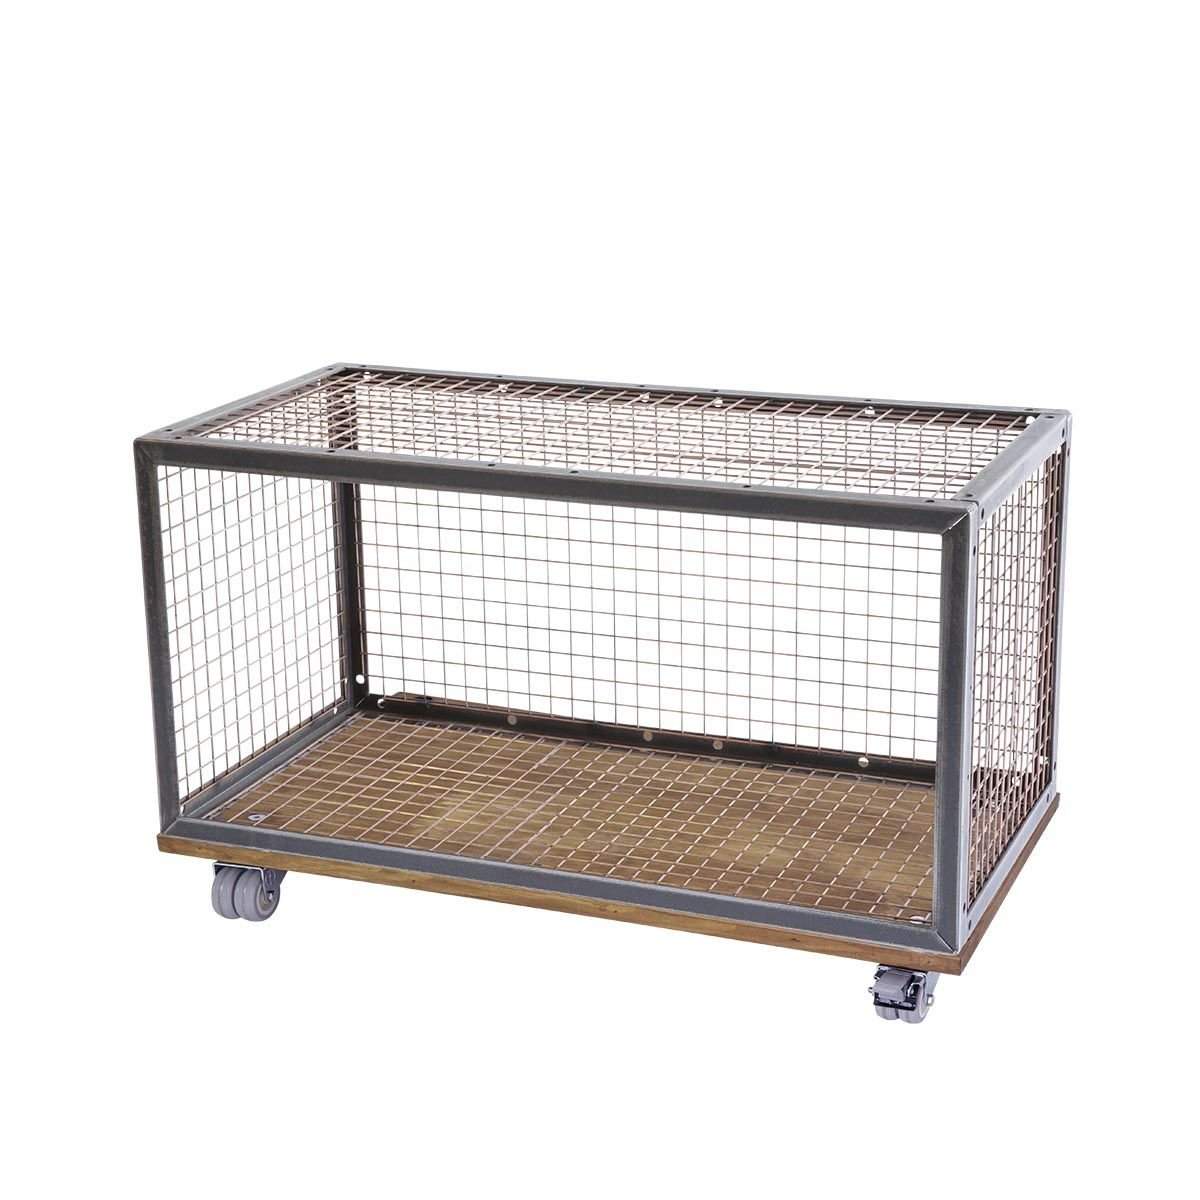 Wire Retail Display Box with Wheels | Modular Display Units ...